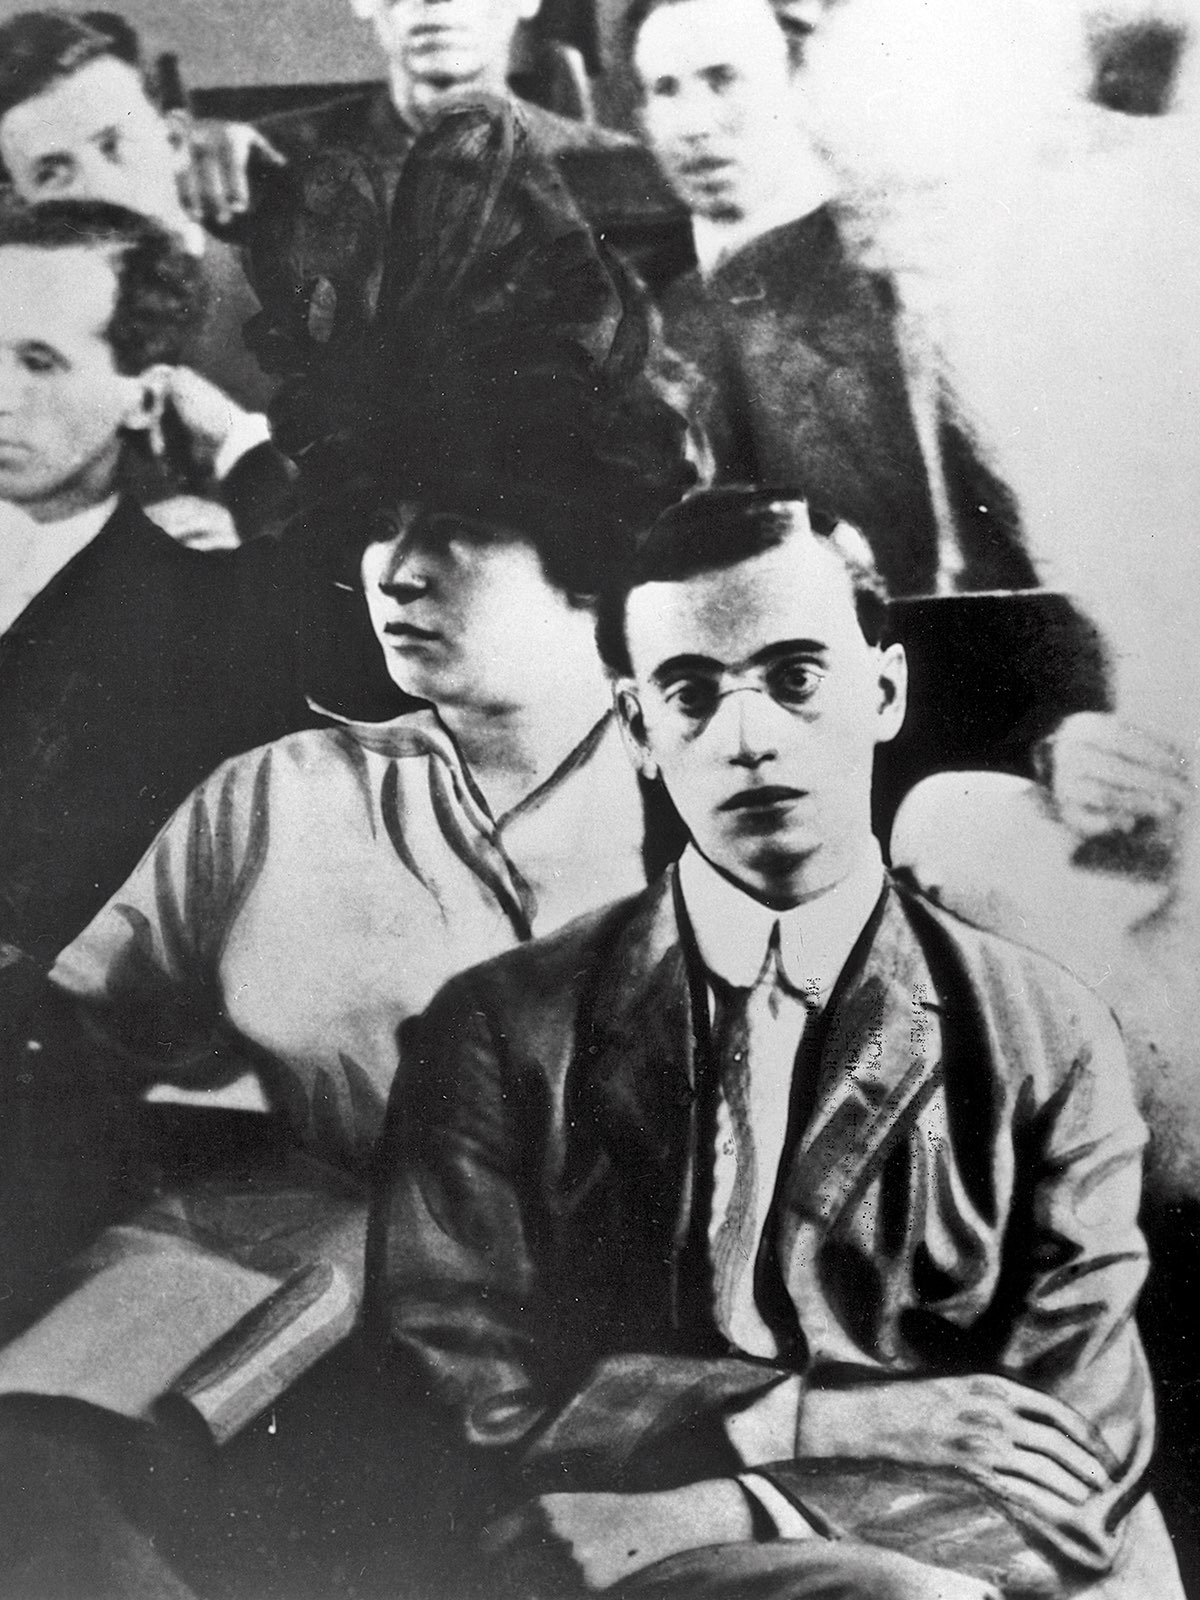 Leo Frank at his trial in 1913